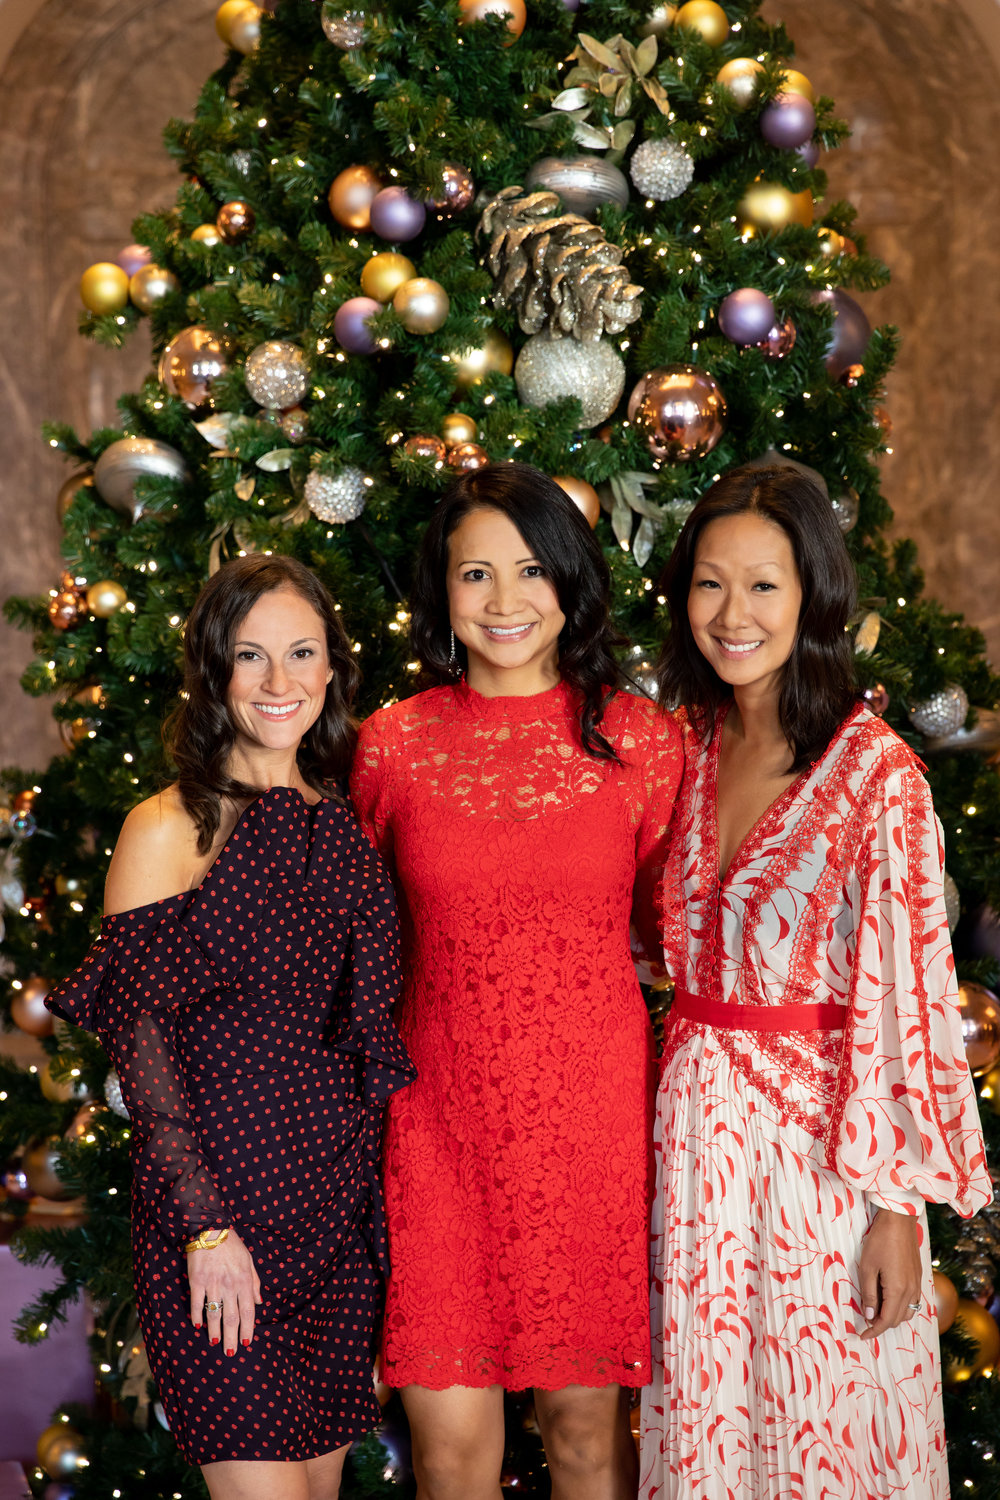 015_Catherine Hall Studios_CHG Holiday Boutique and Luncheon December 2018.jpg